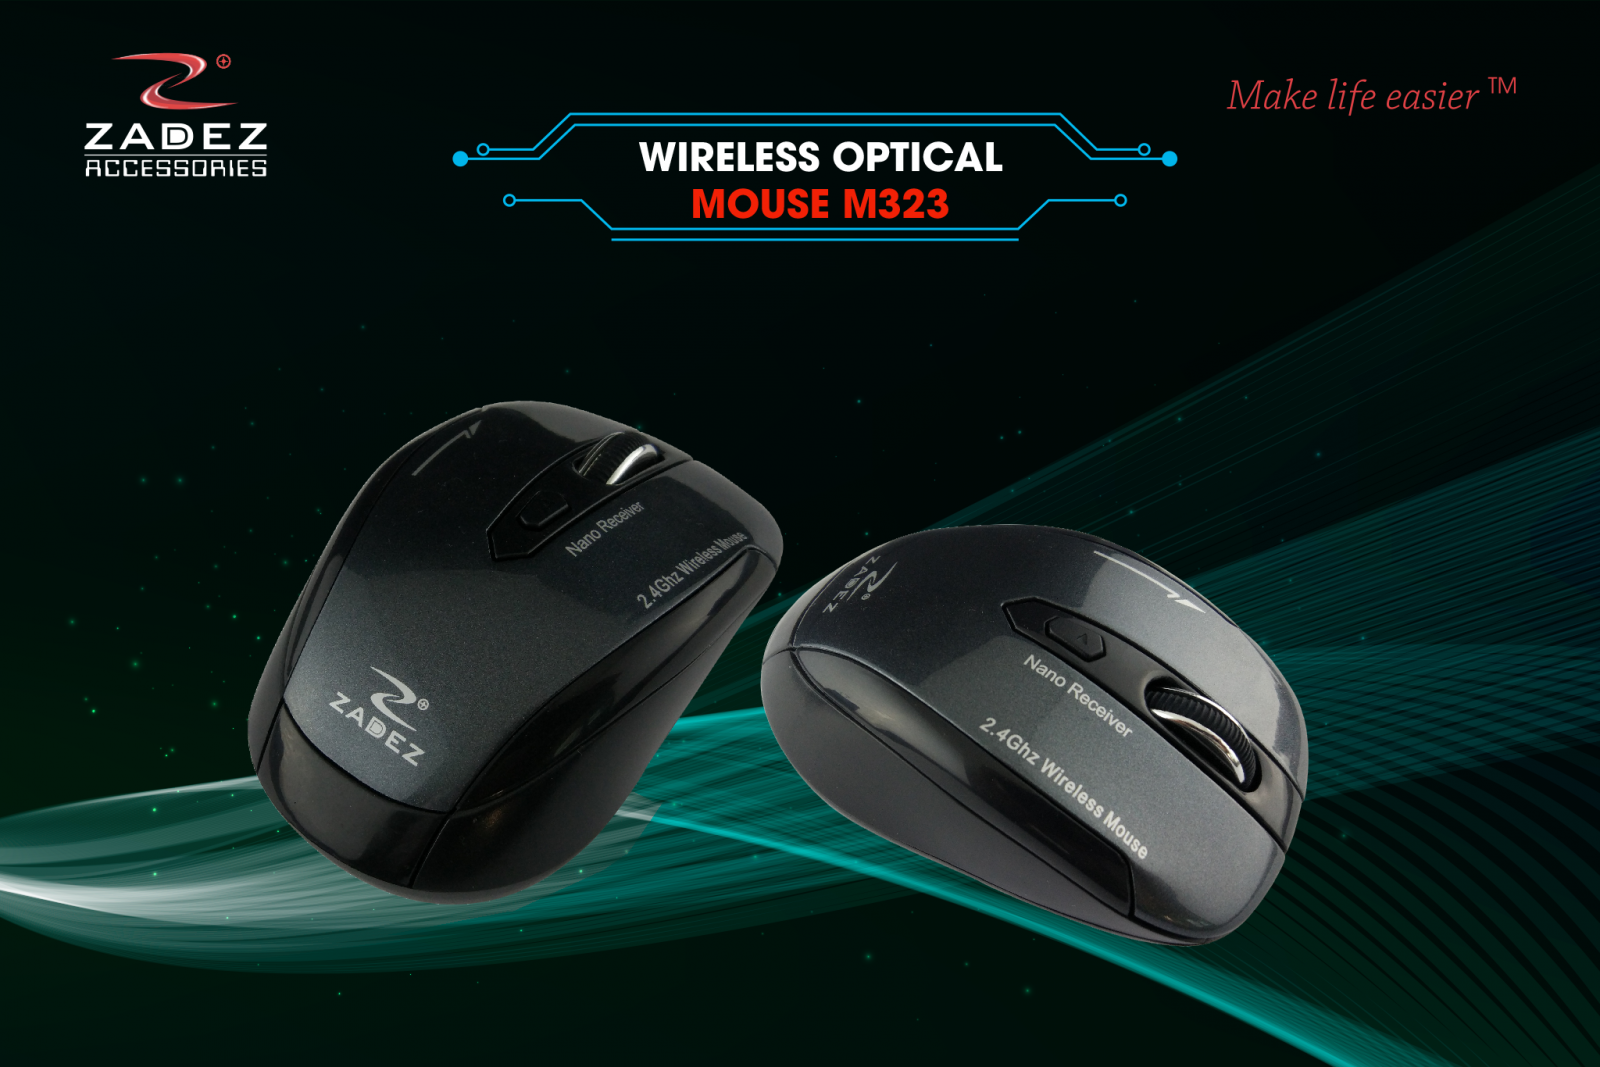 Zadez Anywhere Mouse M323